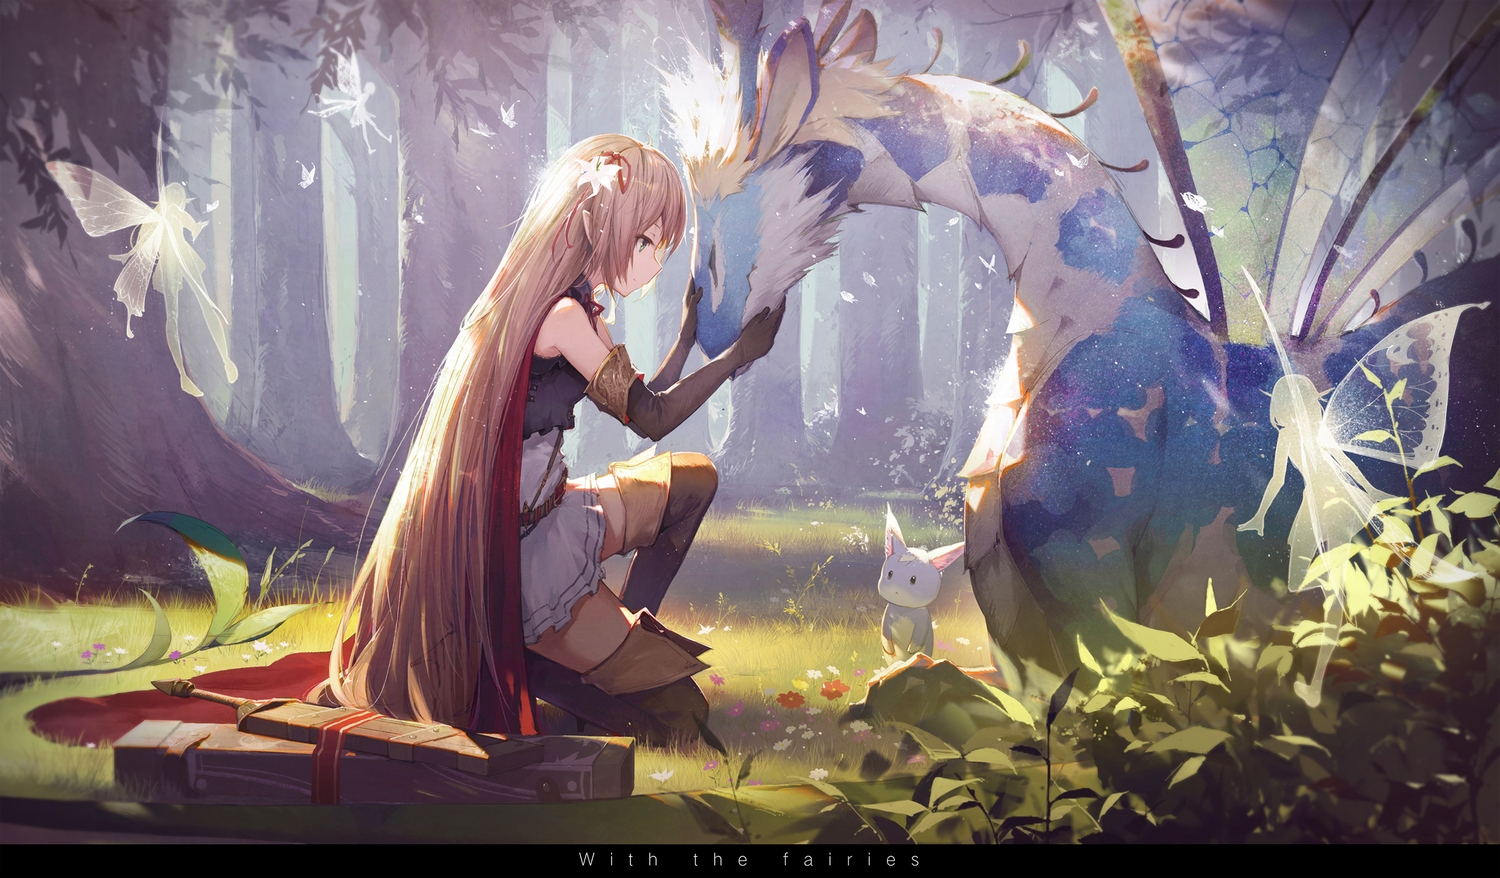 animal arisa_(shadowverse) blonde_hair boots cape dress elbow_gloves fairy gloves green_eyes kieed leaves long_hair pointed_ears shadowverse sword tree weapon wings zettai_ryouiki